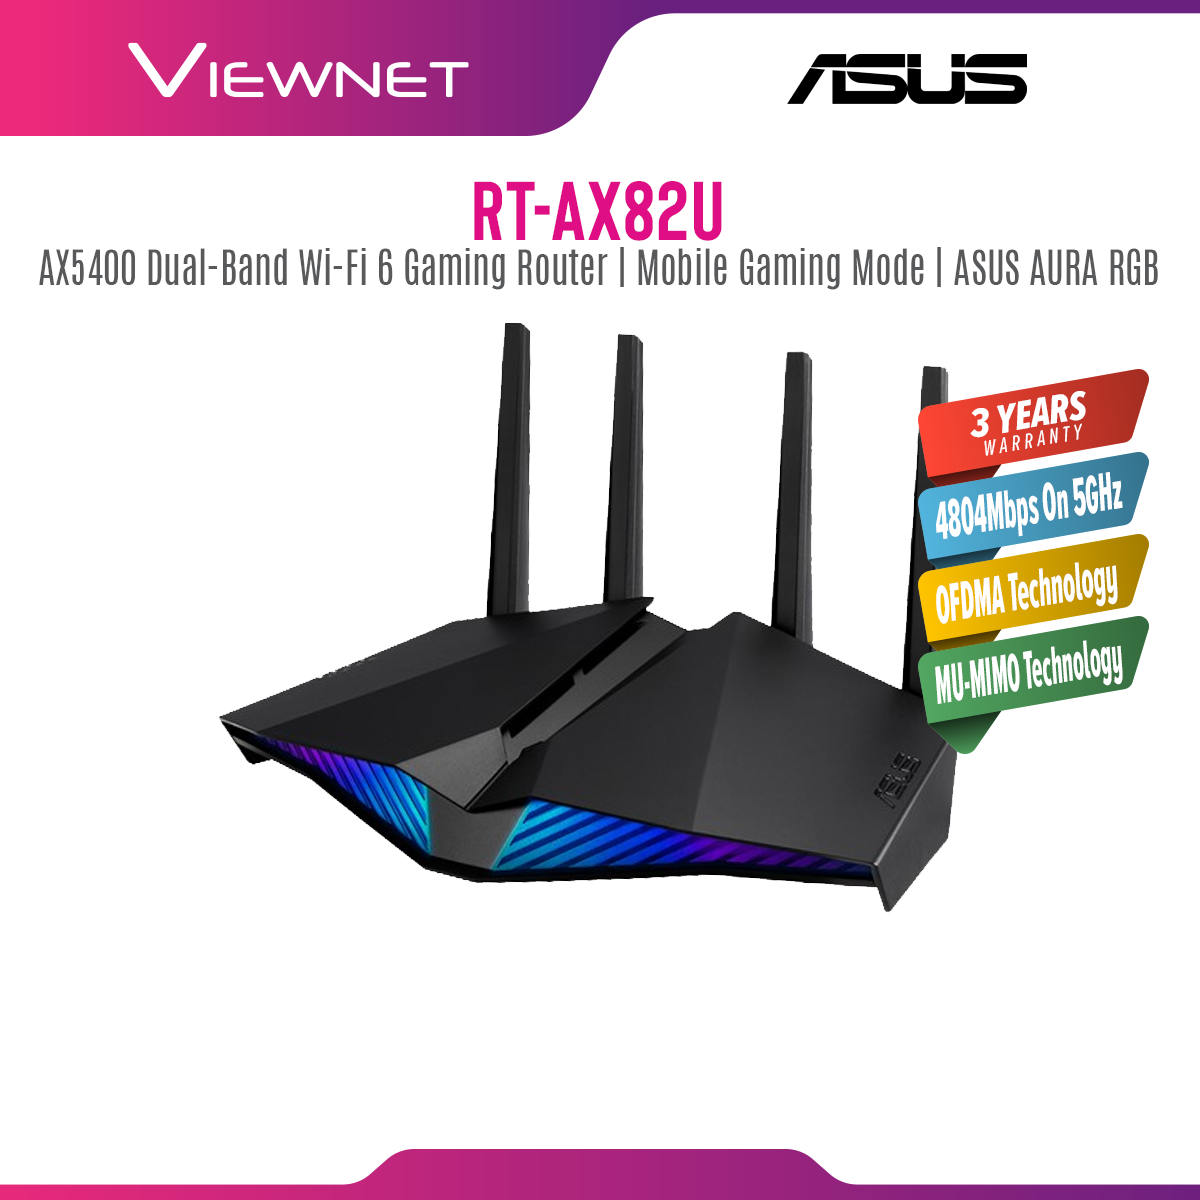 ASUS Gaming Router RGB RT-AX82U AX5400 Wi-Fi 6 Router 160Mhz Lifetime Anti Virus